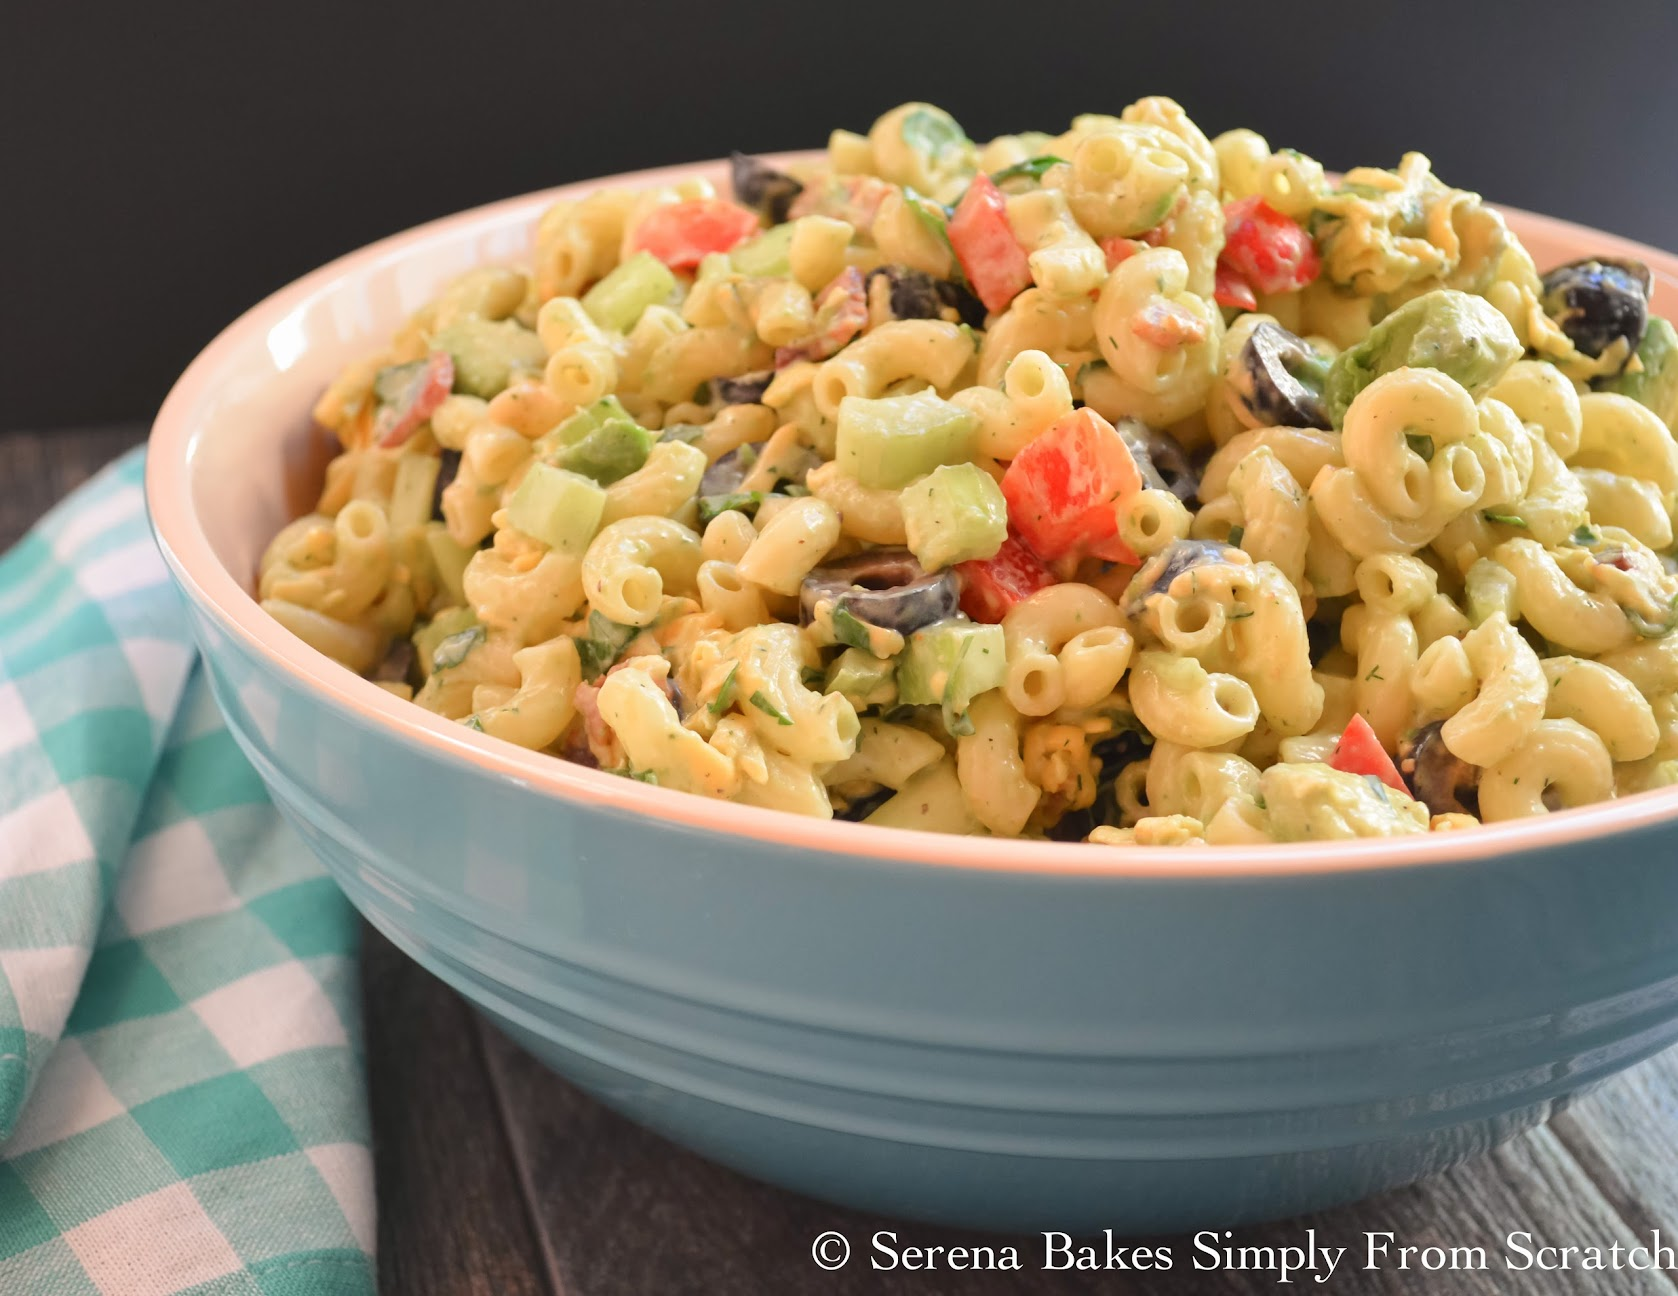 Creamy Avocado Bacon Pasta Salad with Dill Dressing is perfect for picnics and barbecues.